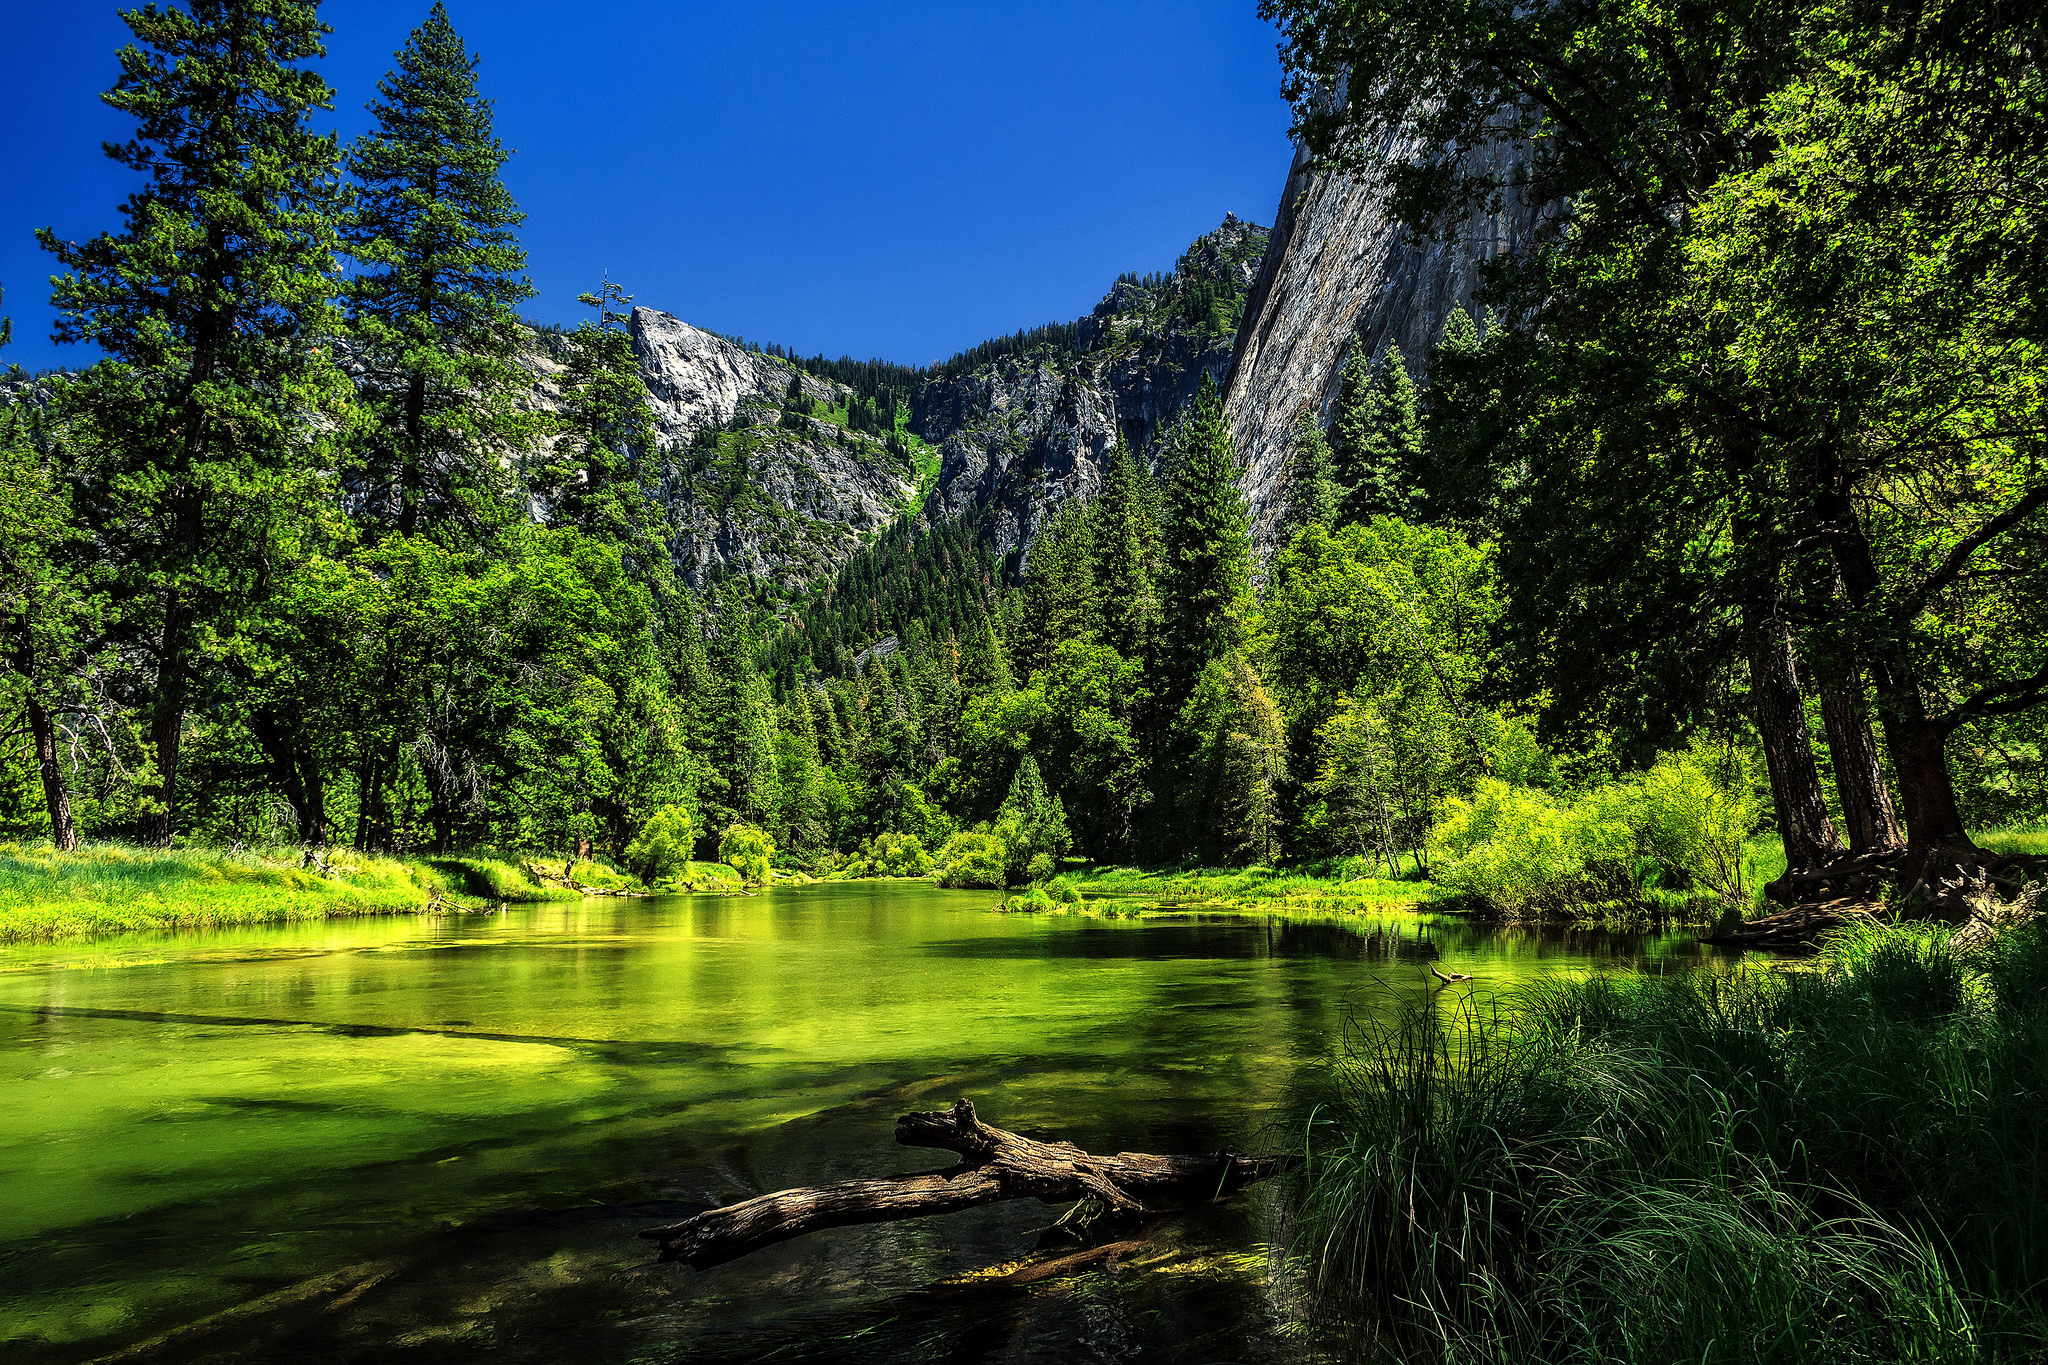 116 yosemite hd wallpapers background images wallpaper - Yosemite national park hd wallpaper ...